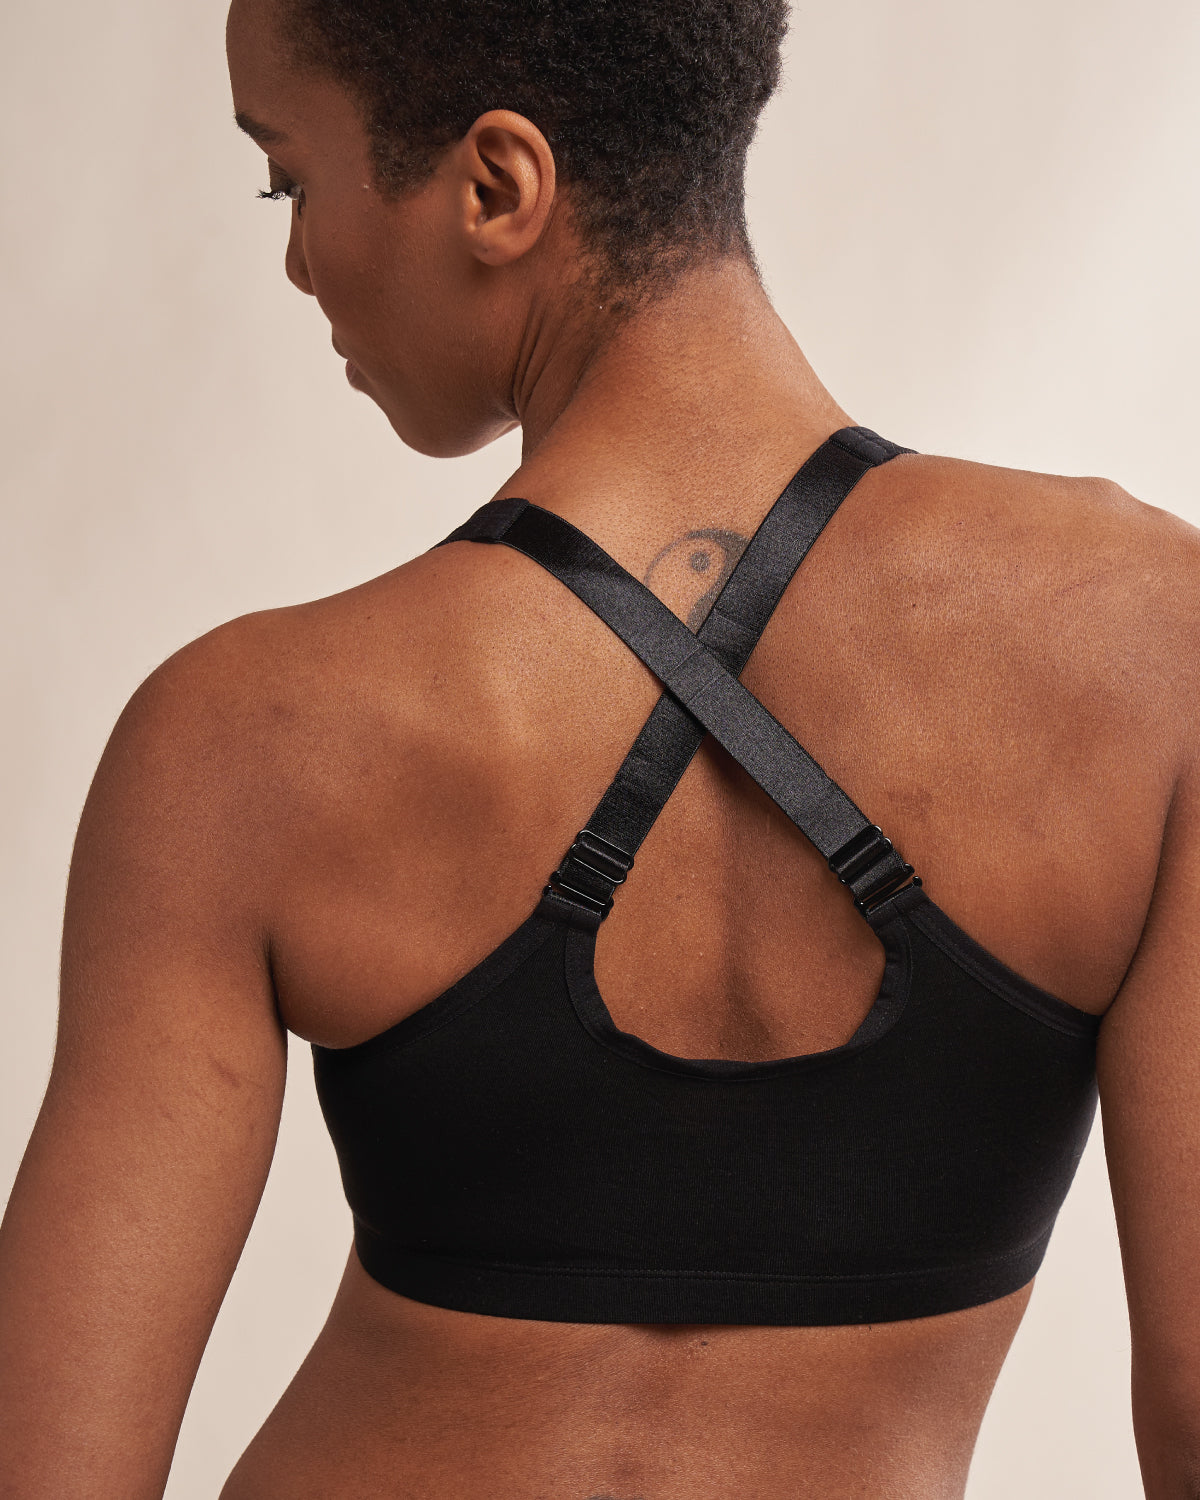 Black, pocketed front closure wireless bra with soft modal material and convertible & adjustable straps.